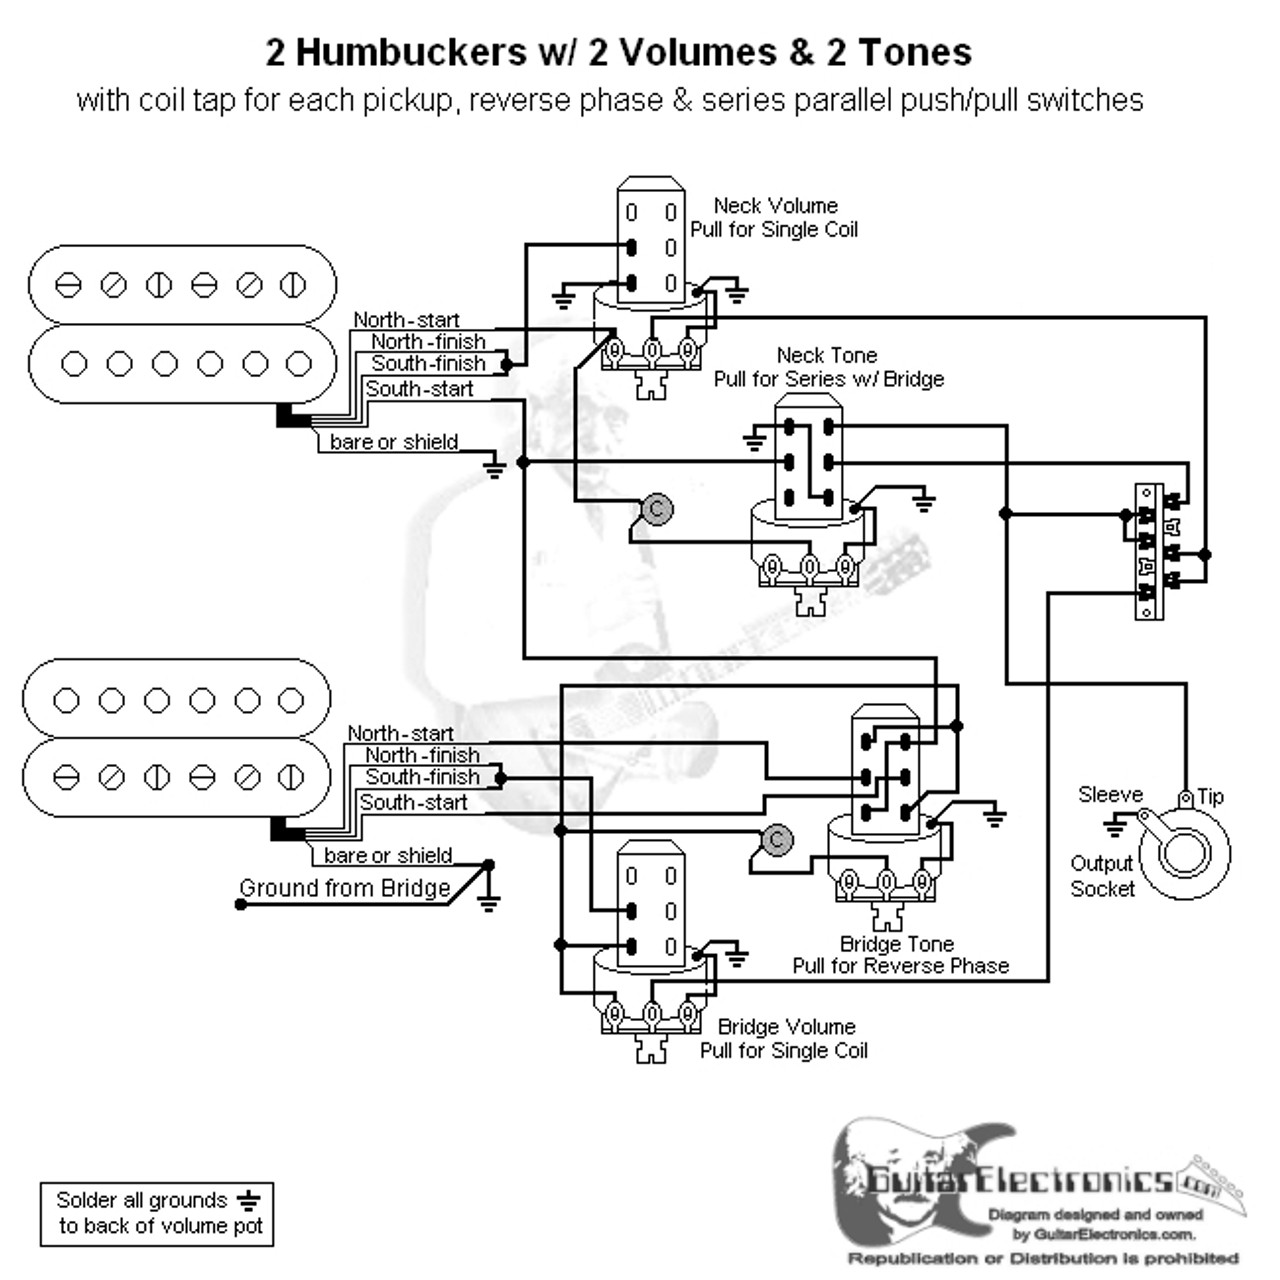 medium resolution of 2 hbs 3 way lever 1 vol 2 tones coil tap series parallel phase les paul 2 vol 2 tone guitar ground wiring diagram